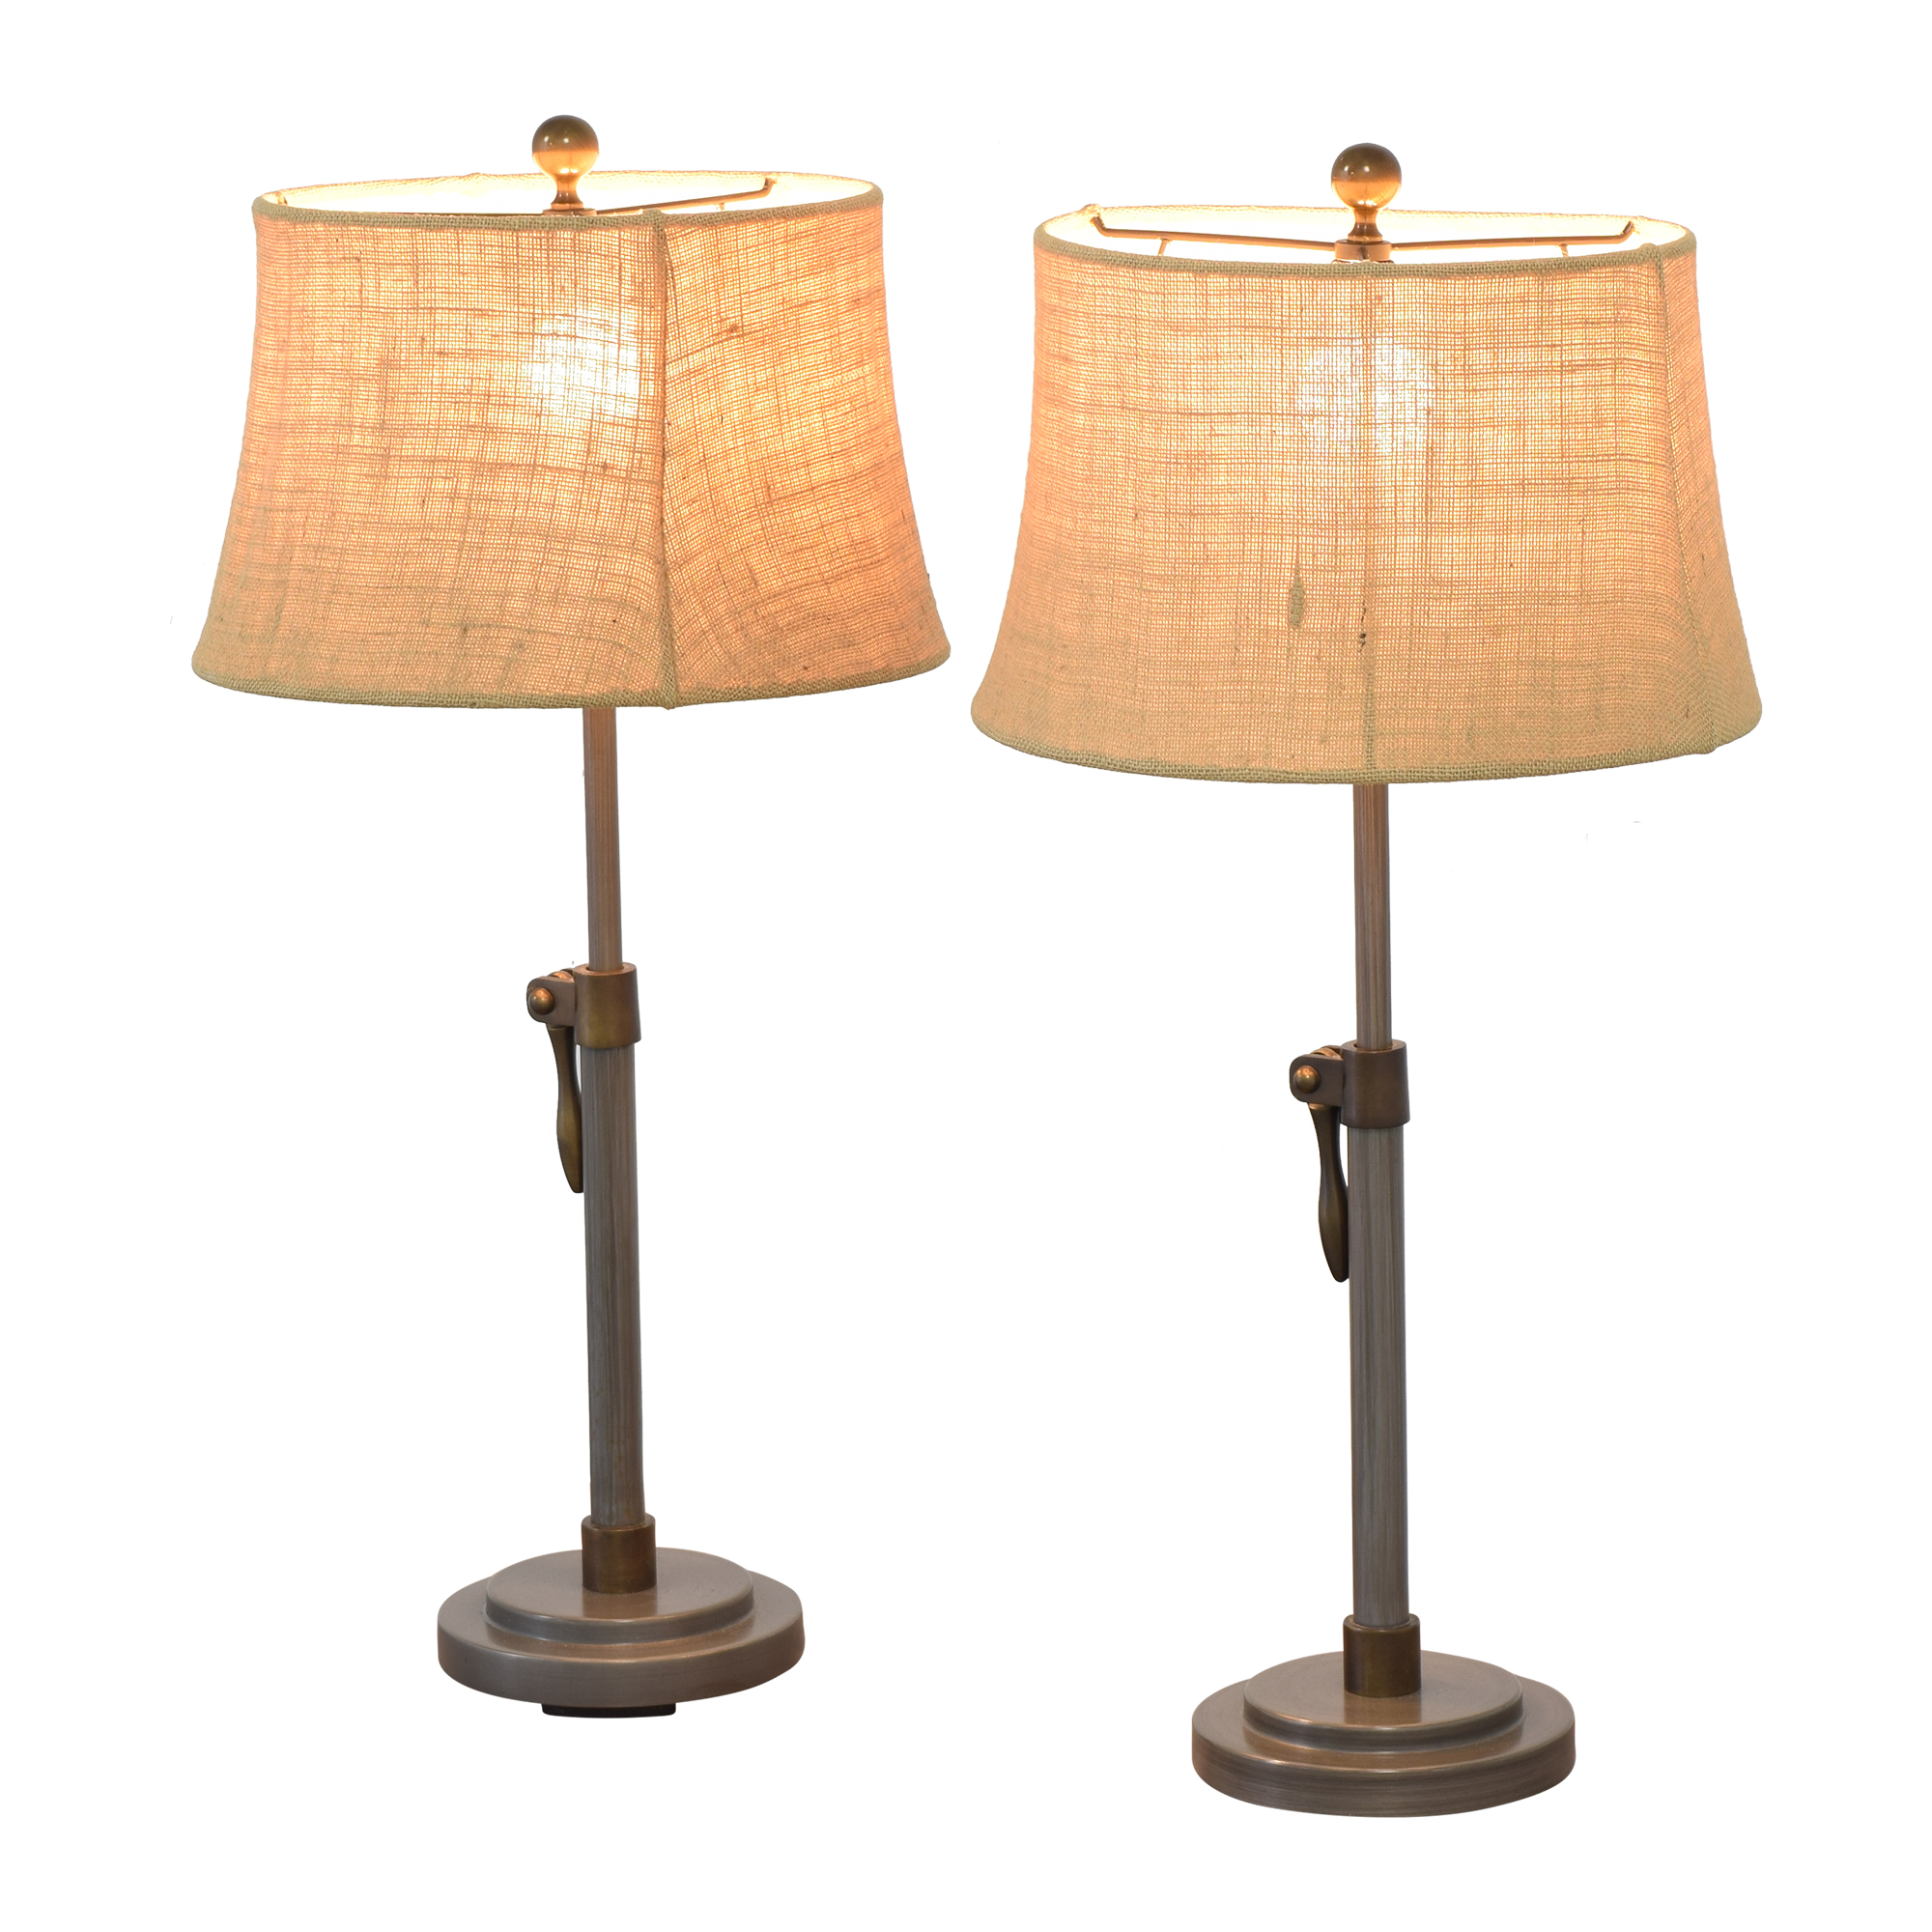 Pottery Barn Pottery Barn Sutter Adjustable Lever Table Lamps second hand